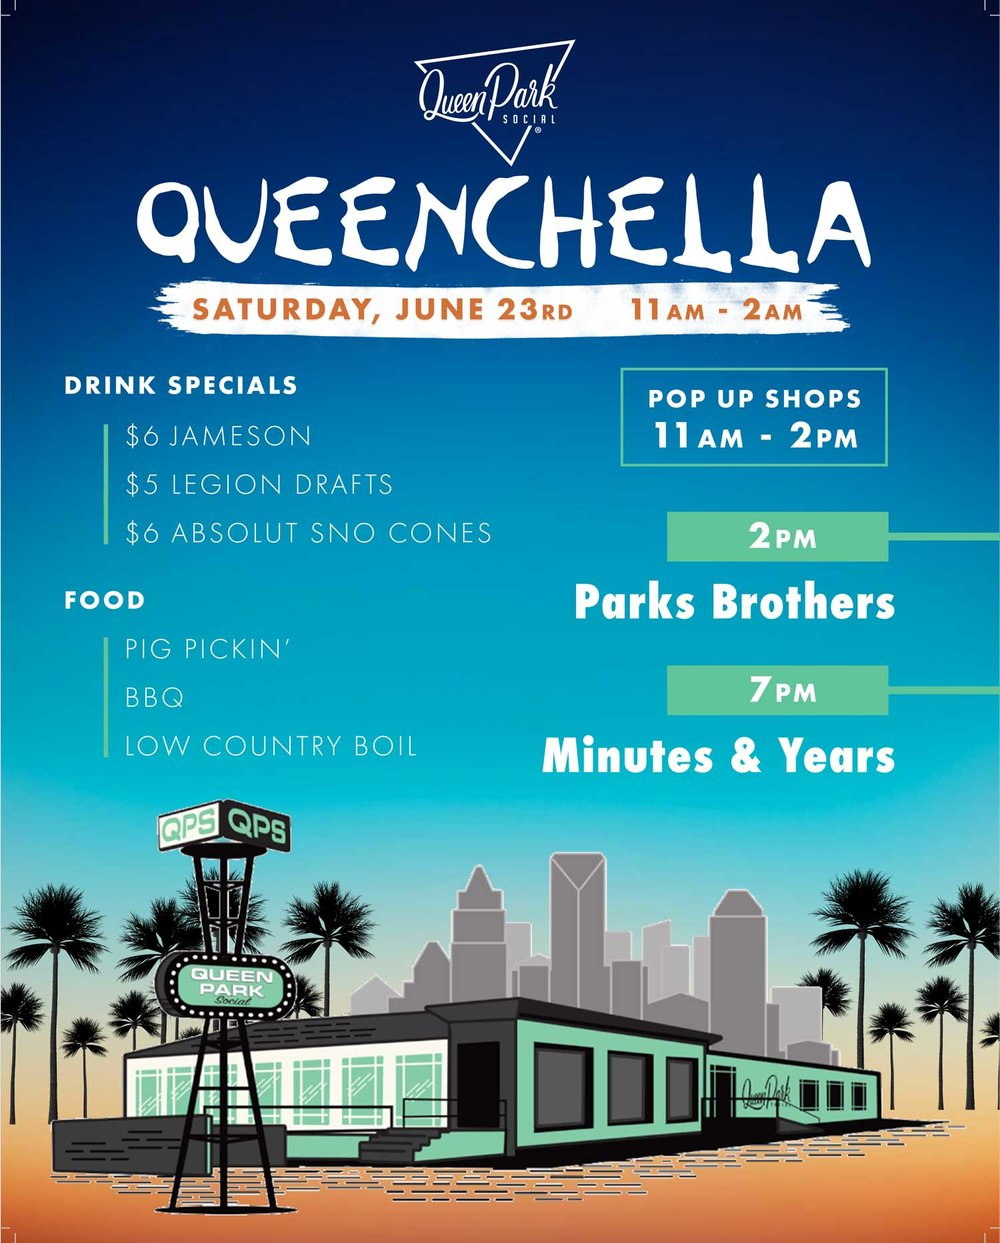 Queenchella-Poster.jpg